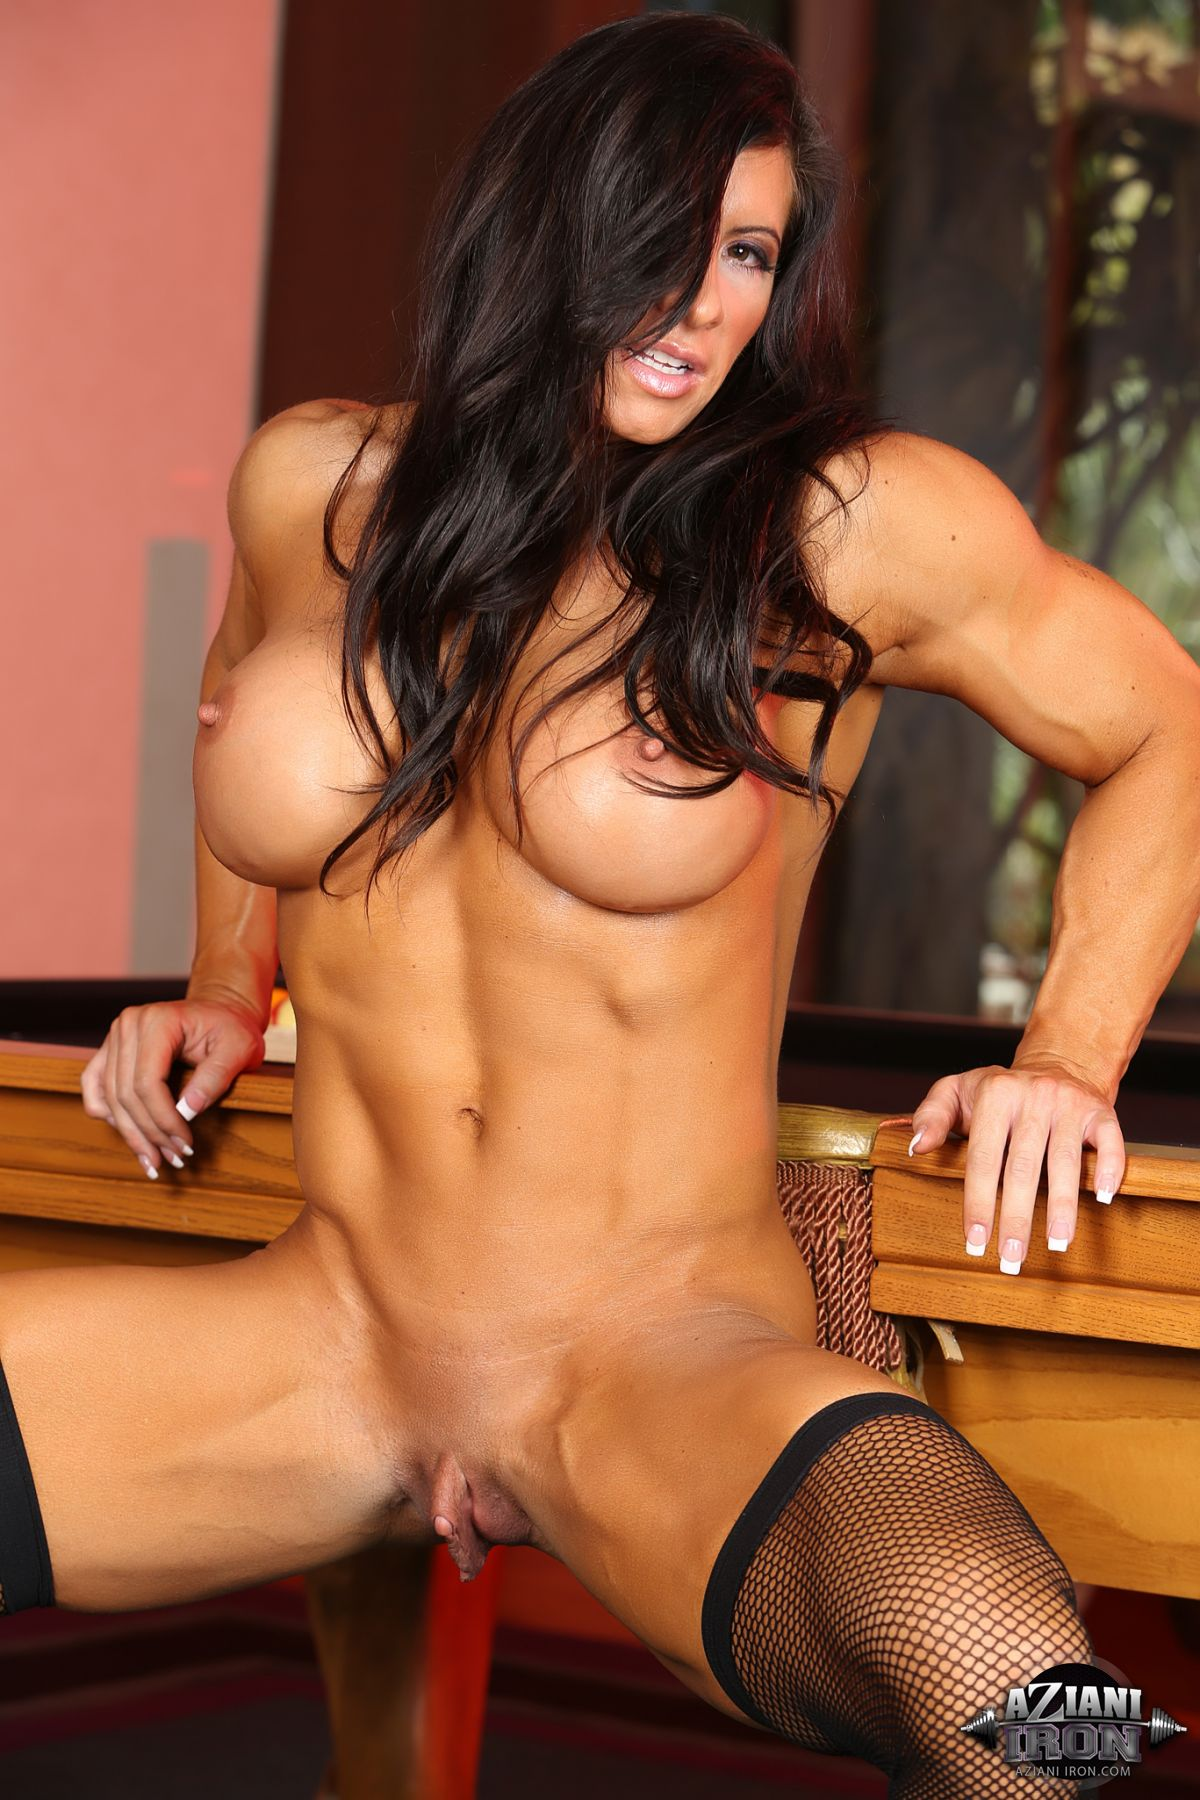 Simply Hot female fitness models naked remarkable, rather